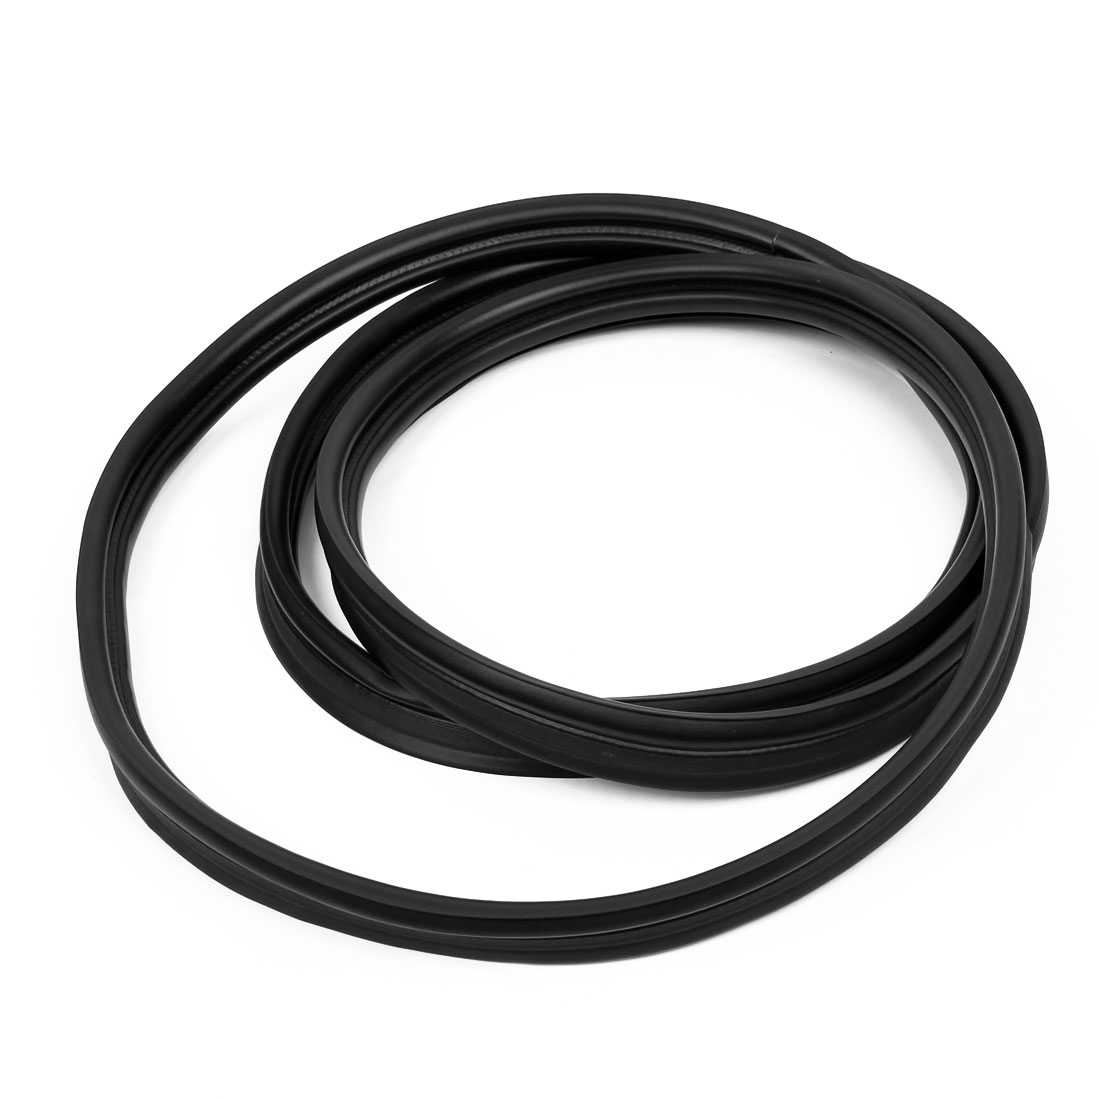 Car Vehicle Black Rubber Rear Trunk Lid Weatherstrip Seal Gasket 74865-SDA-A10